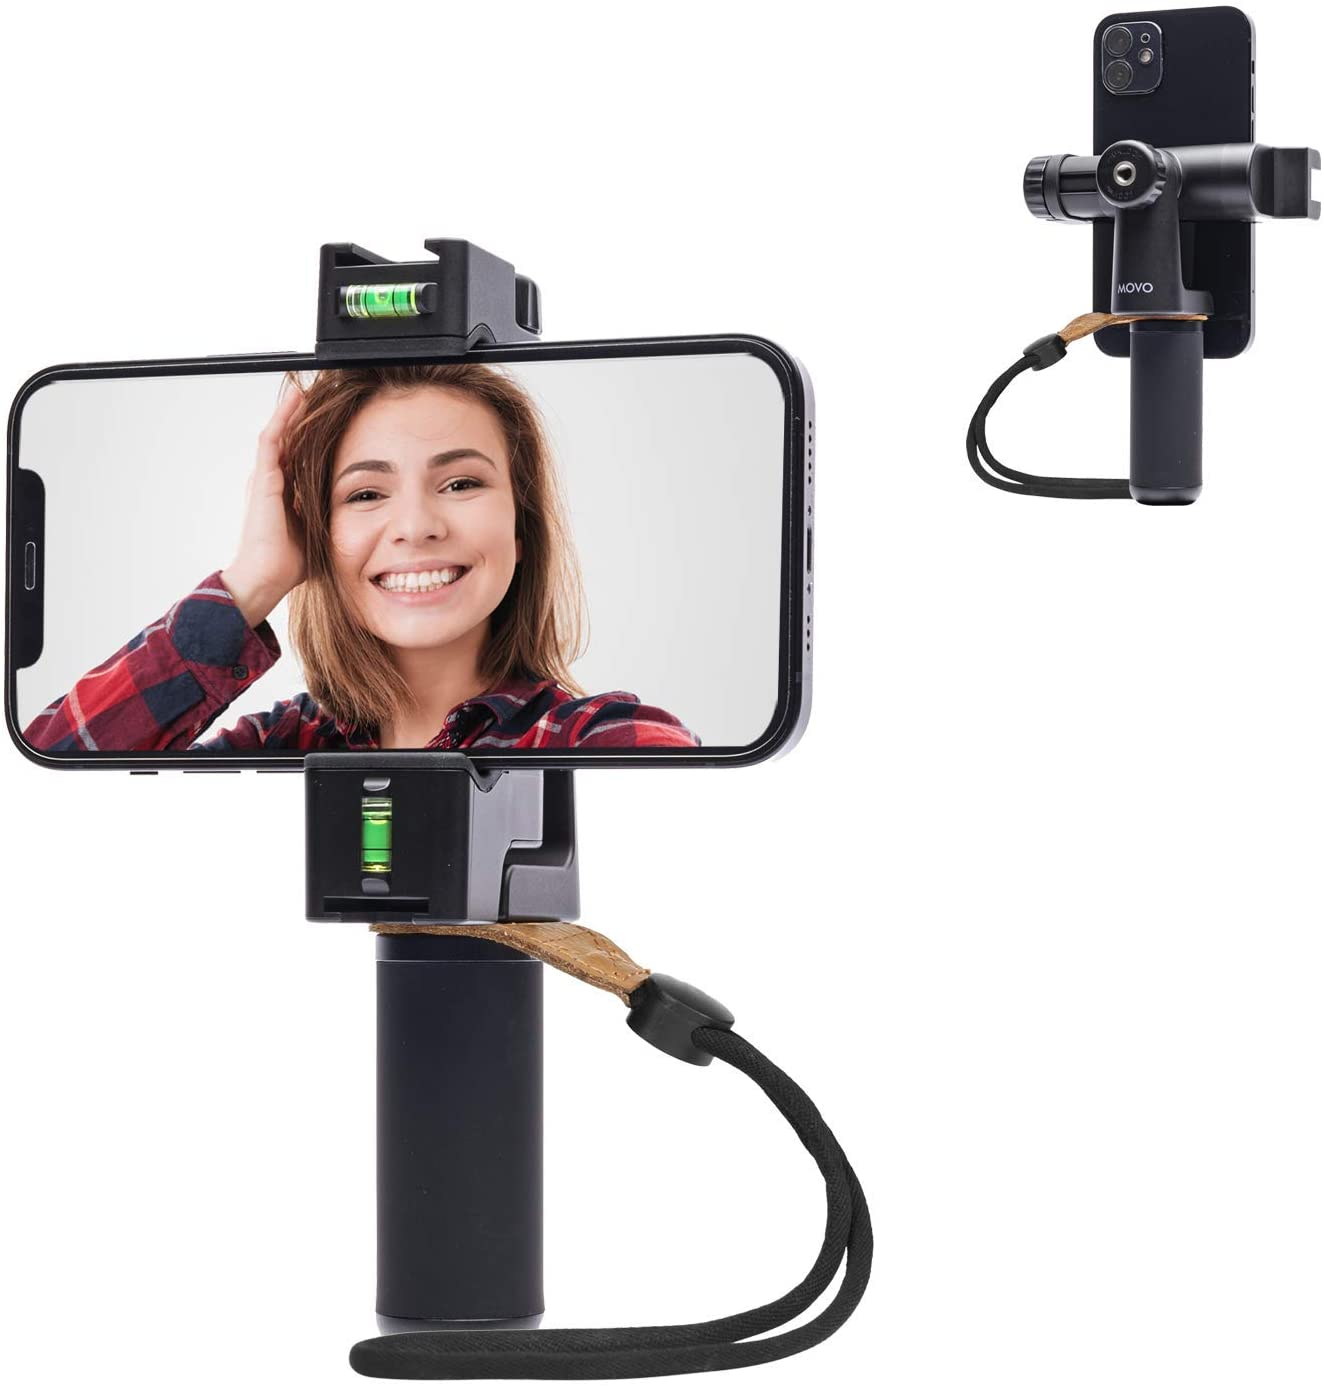 Movo PR-3 Rotating Smartphone Grip Special price for a limited time with Vertical and Rig Handle Sale item